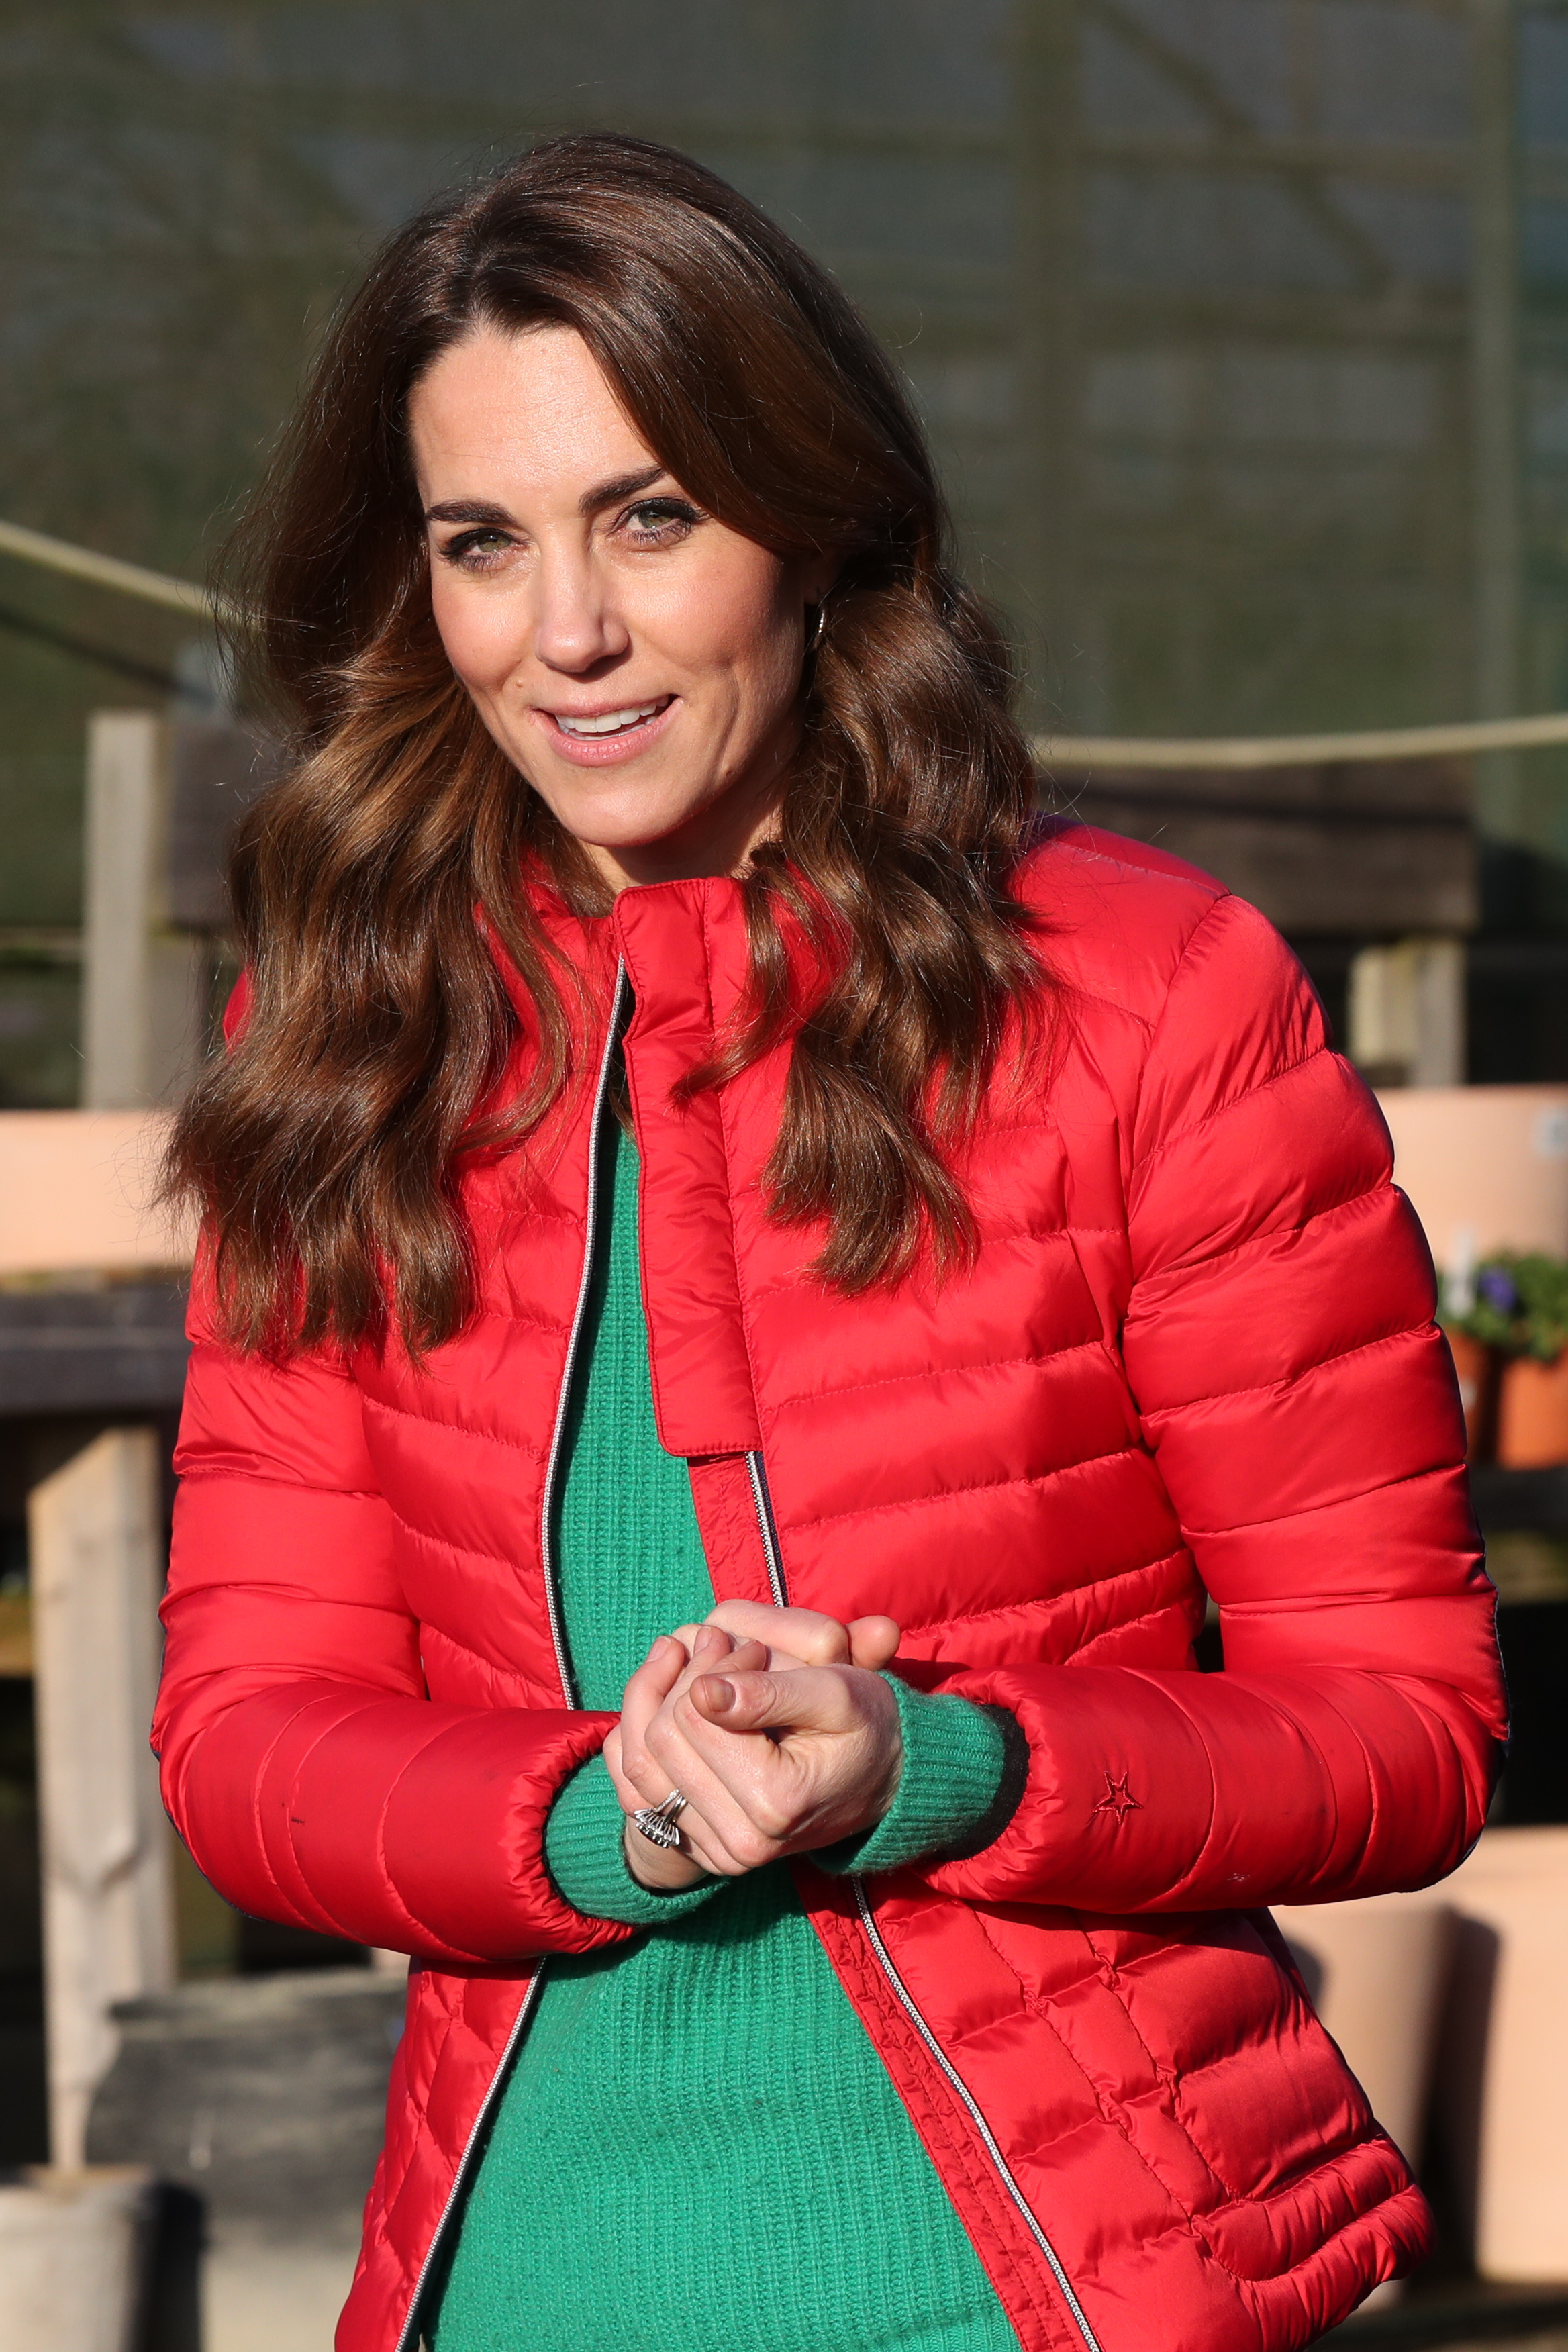 Kate Middleton Wears a Red Puffer Jacket